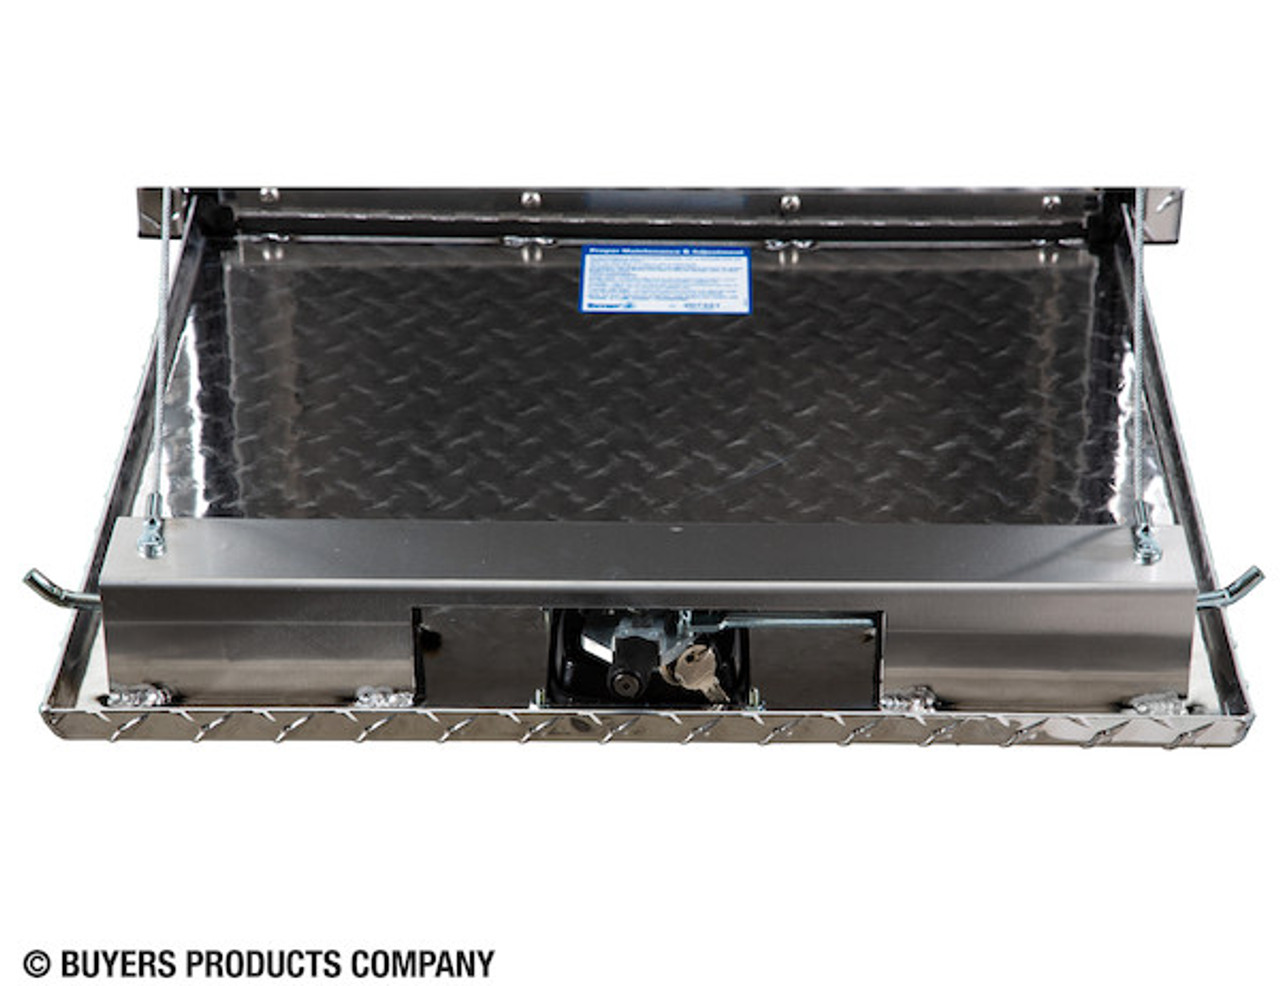 "1735133 BUYERS PRODUCTS DIAMOND TREAD ALUMINUM UNDERBODY TRUCK TOOLBOX WITH 3-PT. LATCH 24""Hx24""Dx30""W"